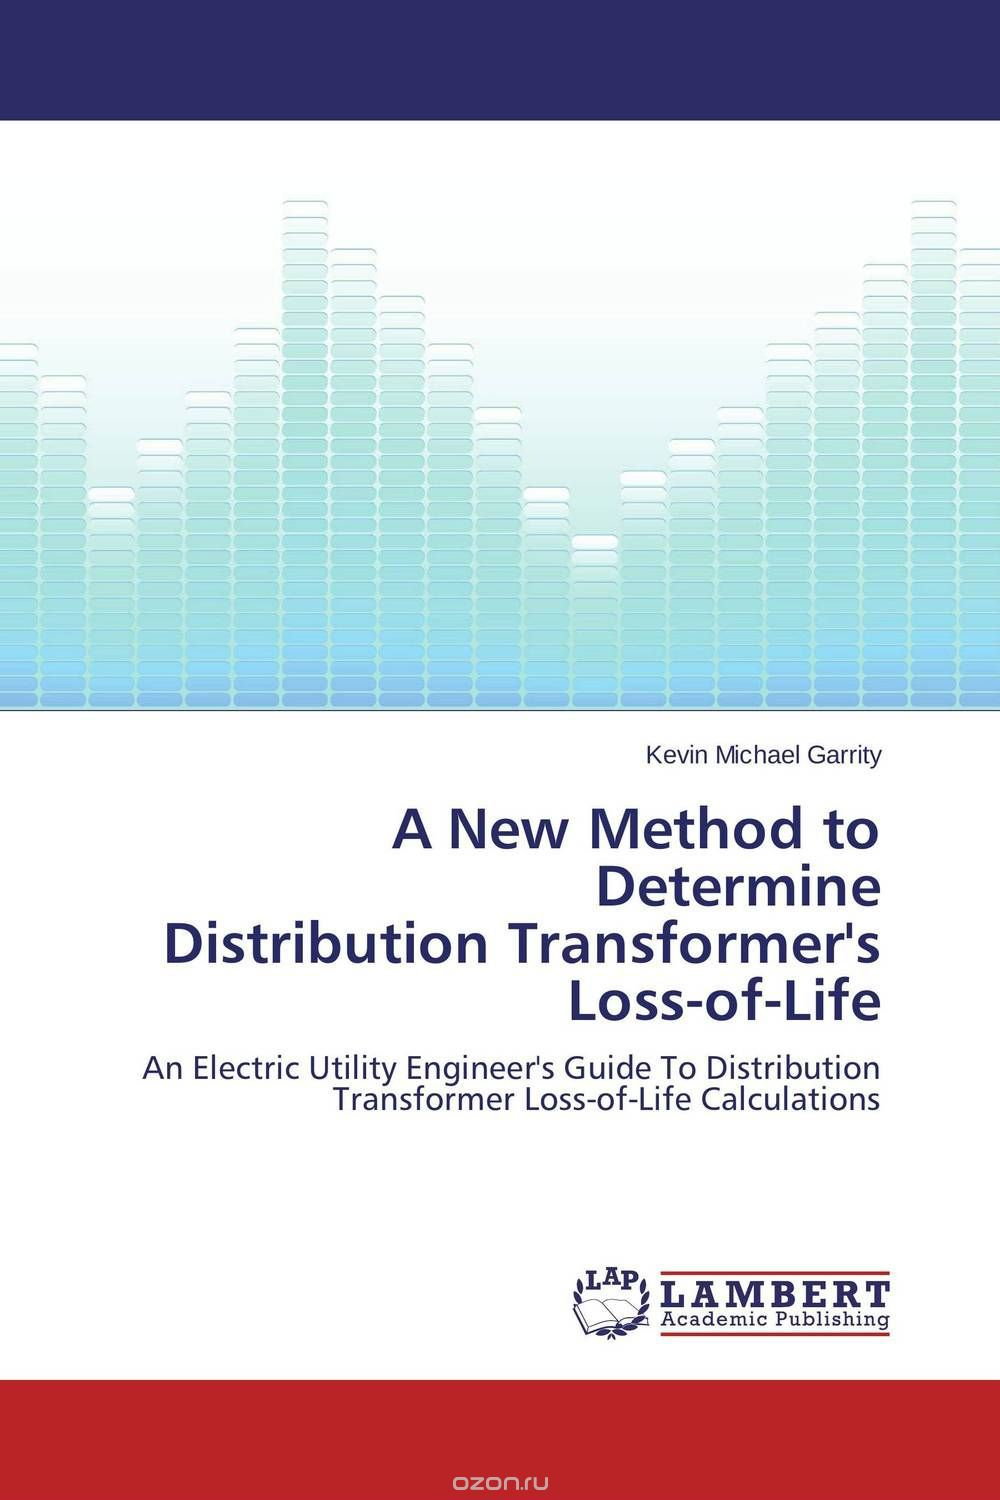 A New Method to Determine Distribution Transformer's Loss-of-Life